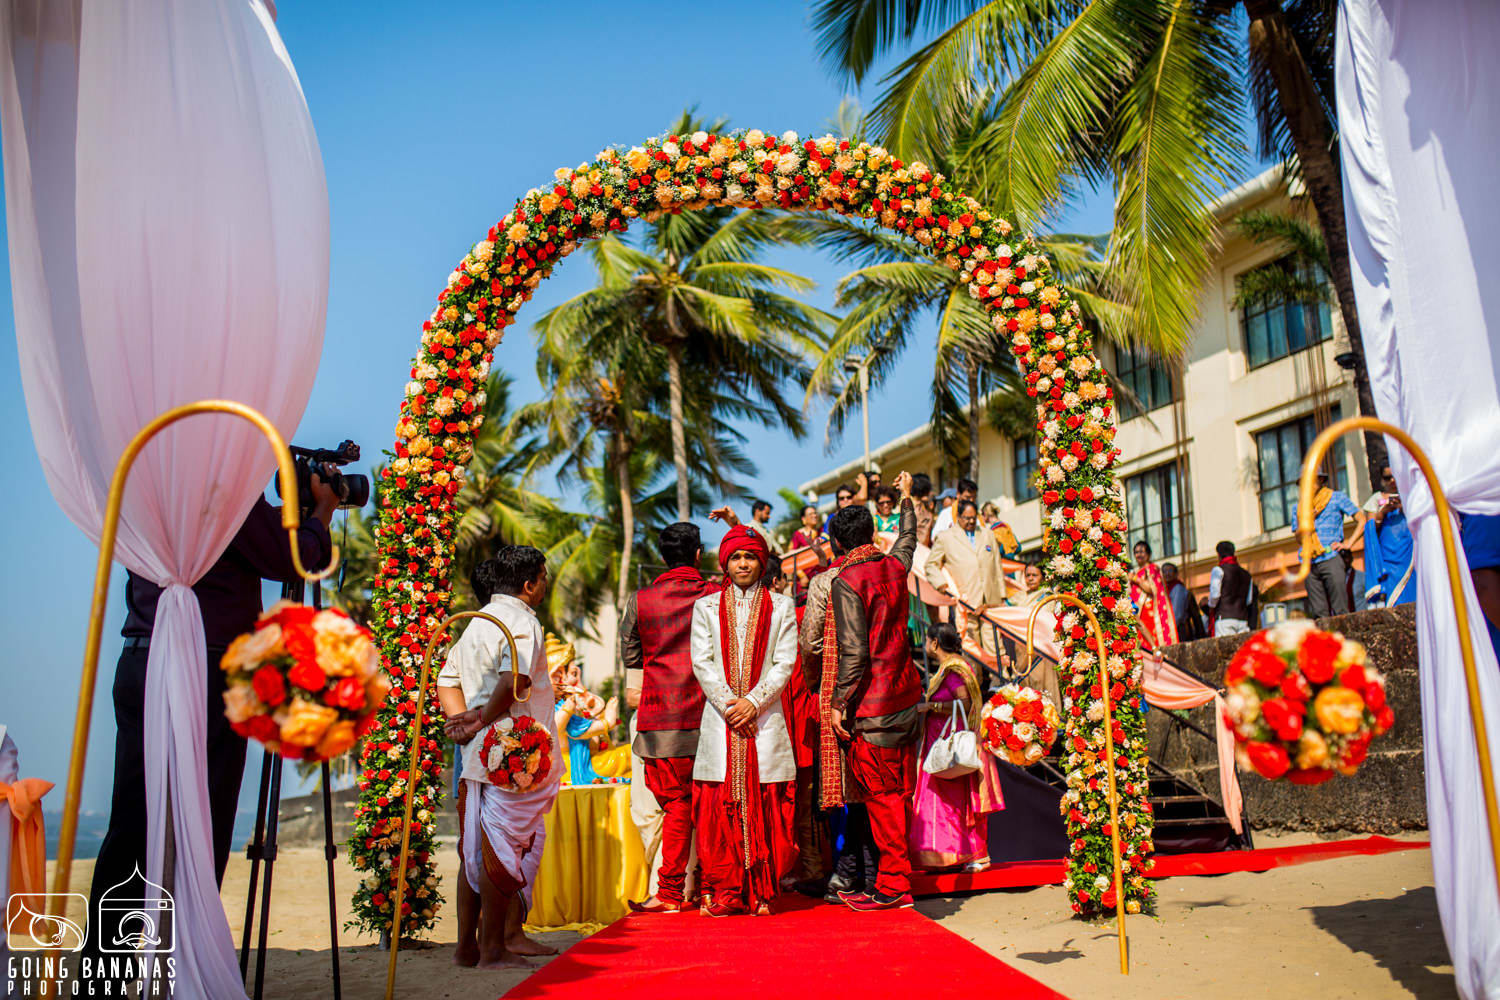 the groom nihar!:manyavar, going bananas photography, makeovers by sukanya, design tuk tuk